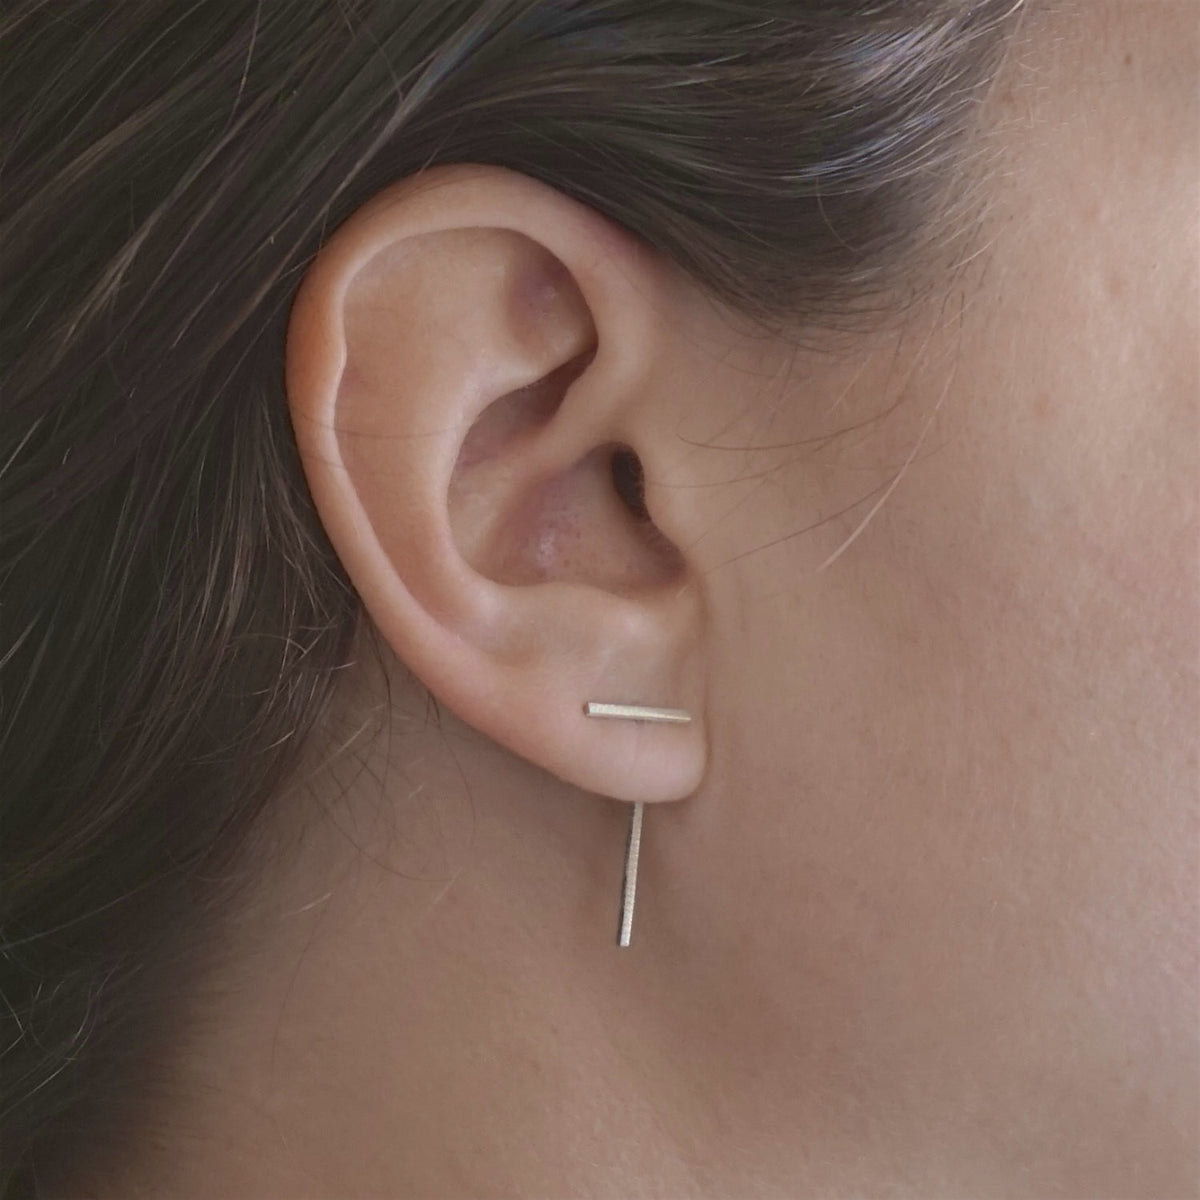 Distinctive Hand-Made Offset Staple Line Ear Jacket Stud Earrings - 0234 - Virginia Wynne Designs